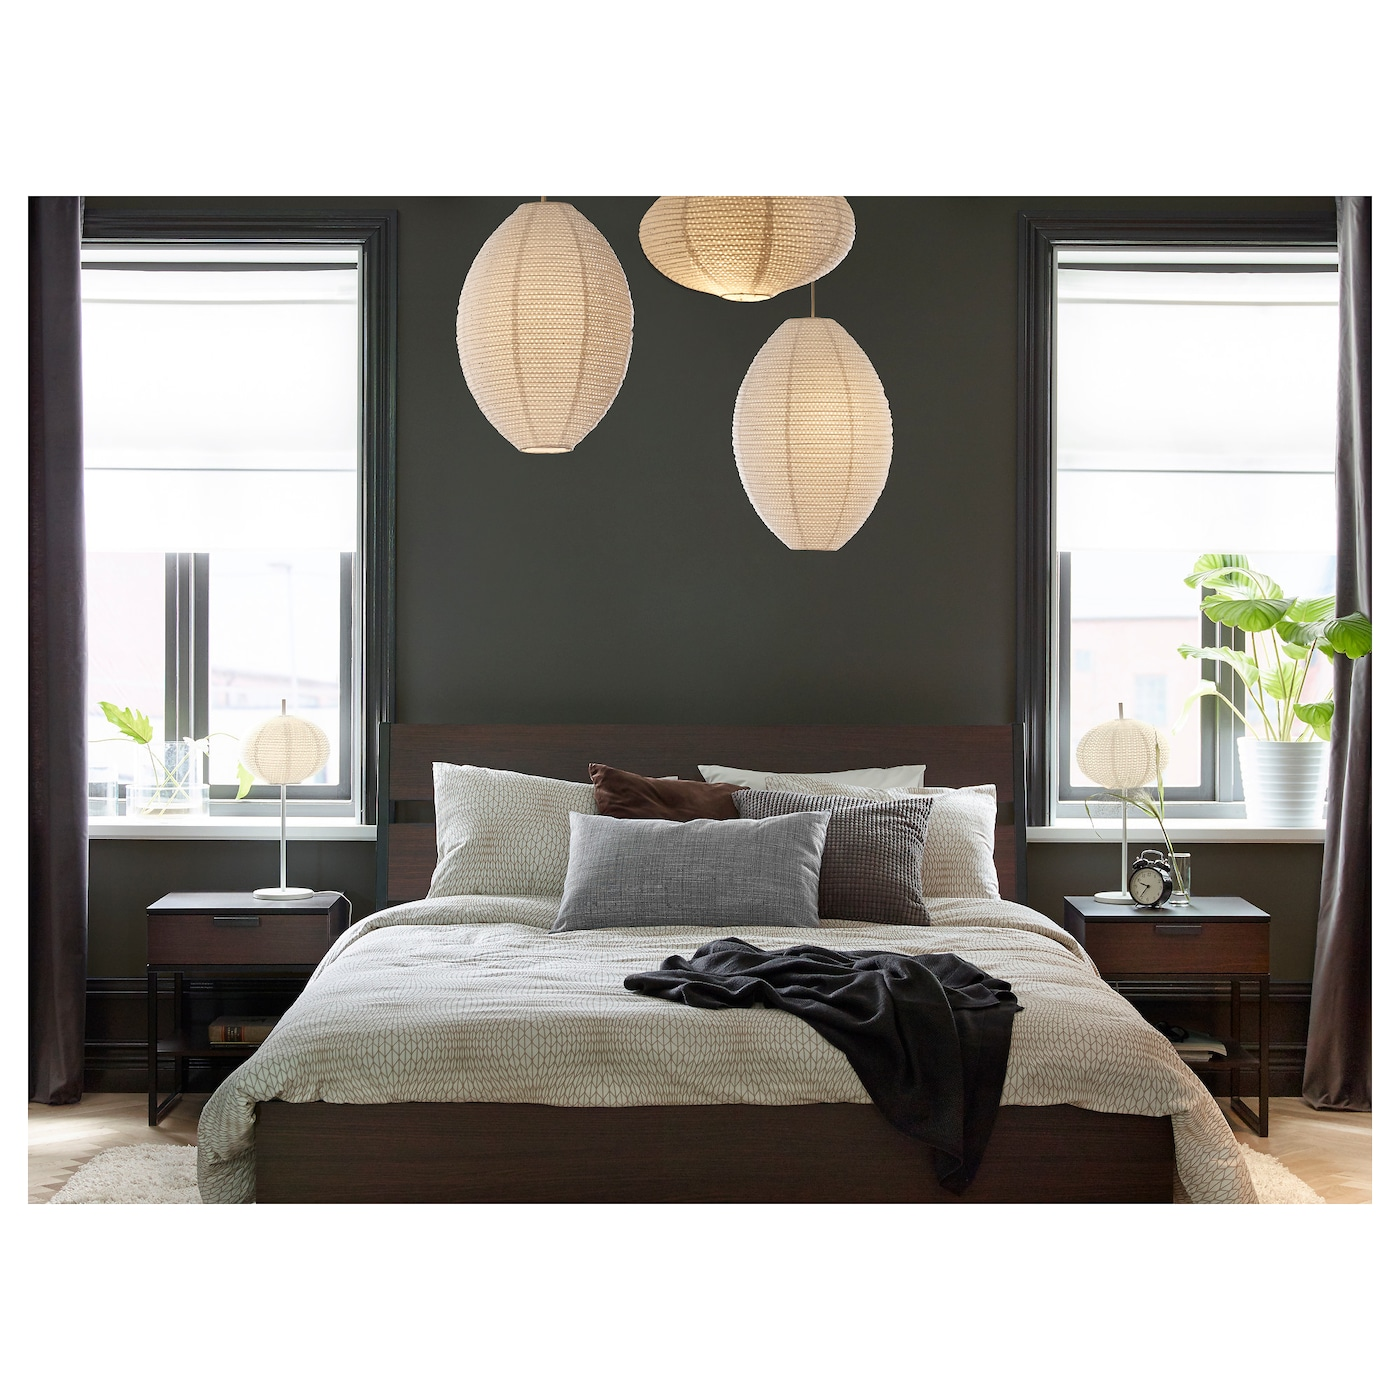 trysil cadre de lit brun fonc noir 140x200 cm ikea. Black Bedroom Furniture Sets. Home Design Ideas